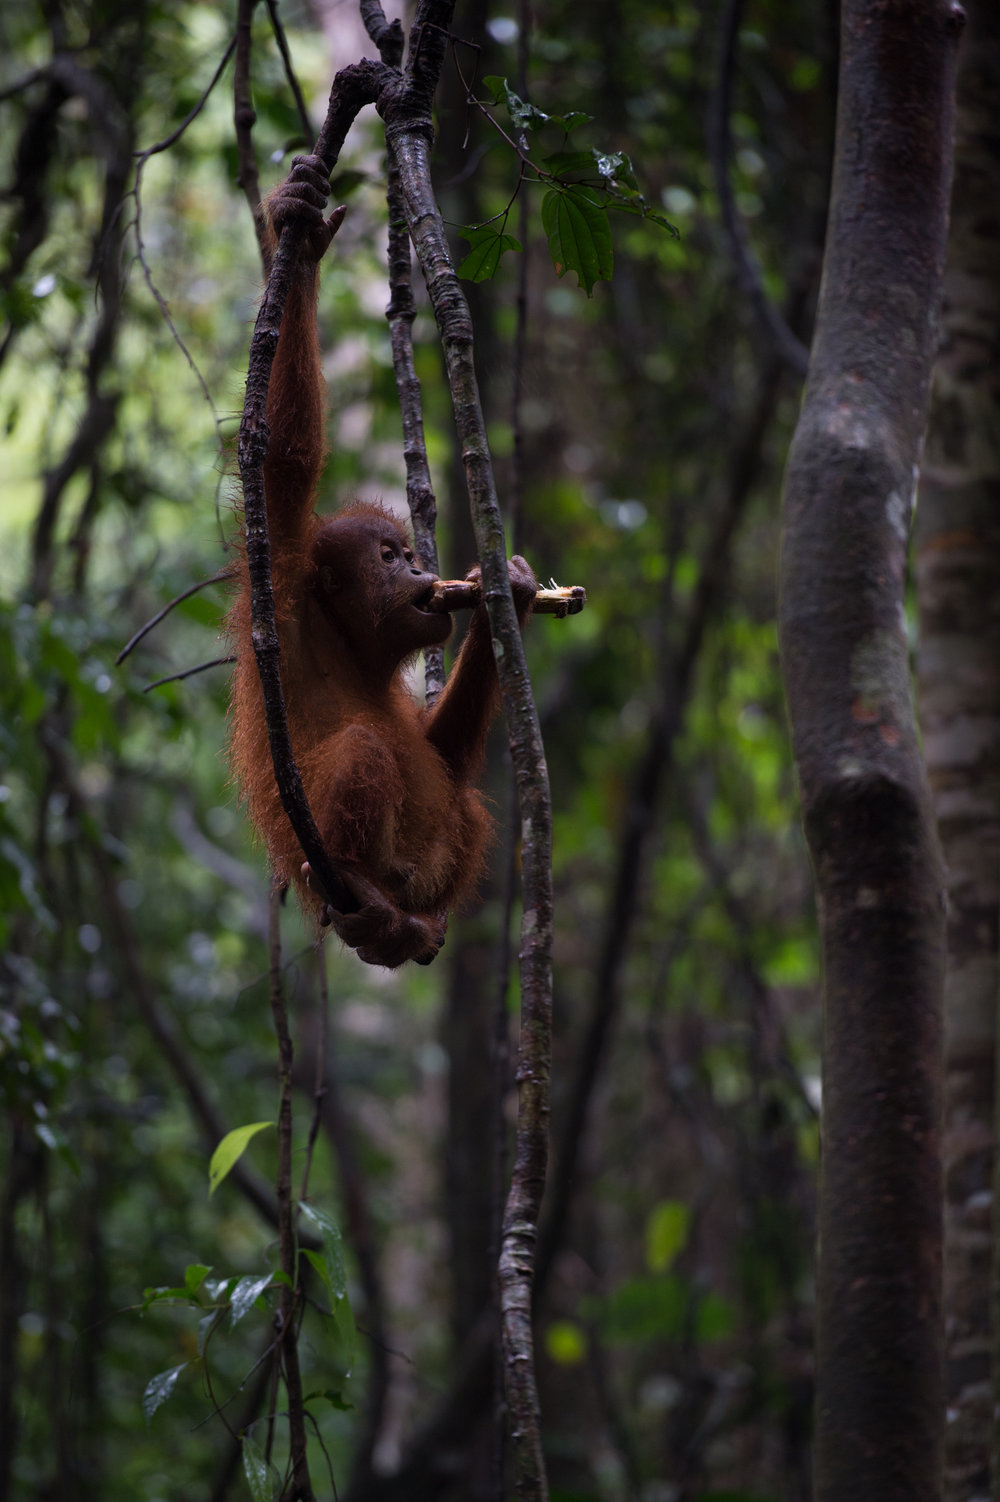 Orangutan Trekking in the Jungles of Sumatra - Photo by Timo Stahl (Instagram: @stahlson_vom_dach)